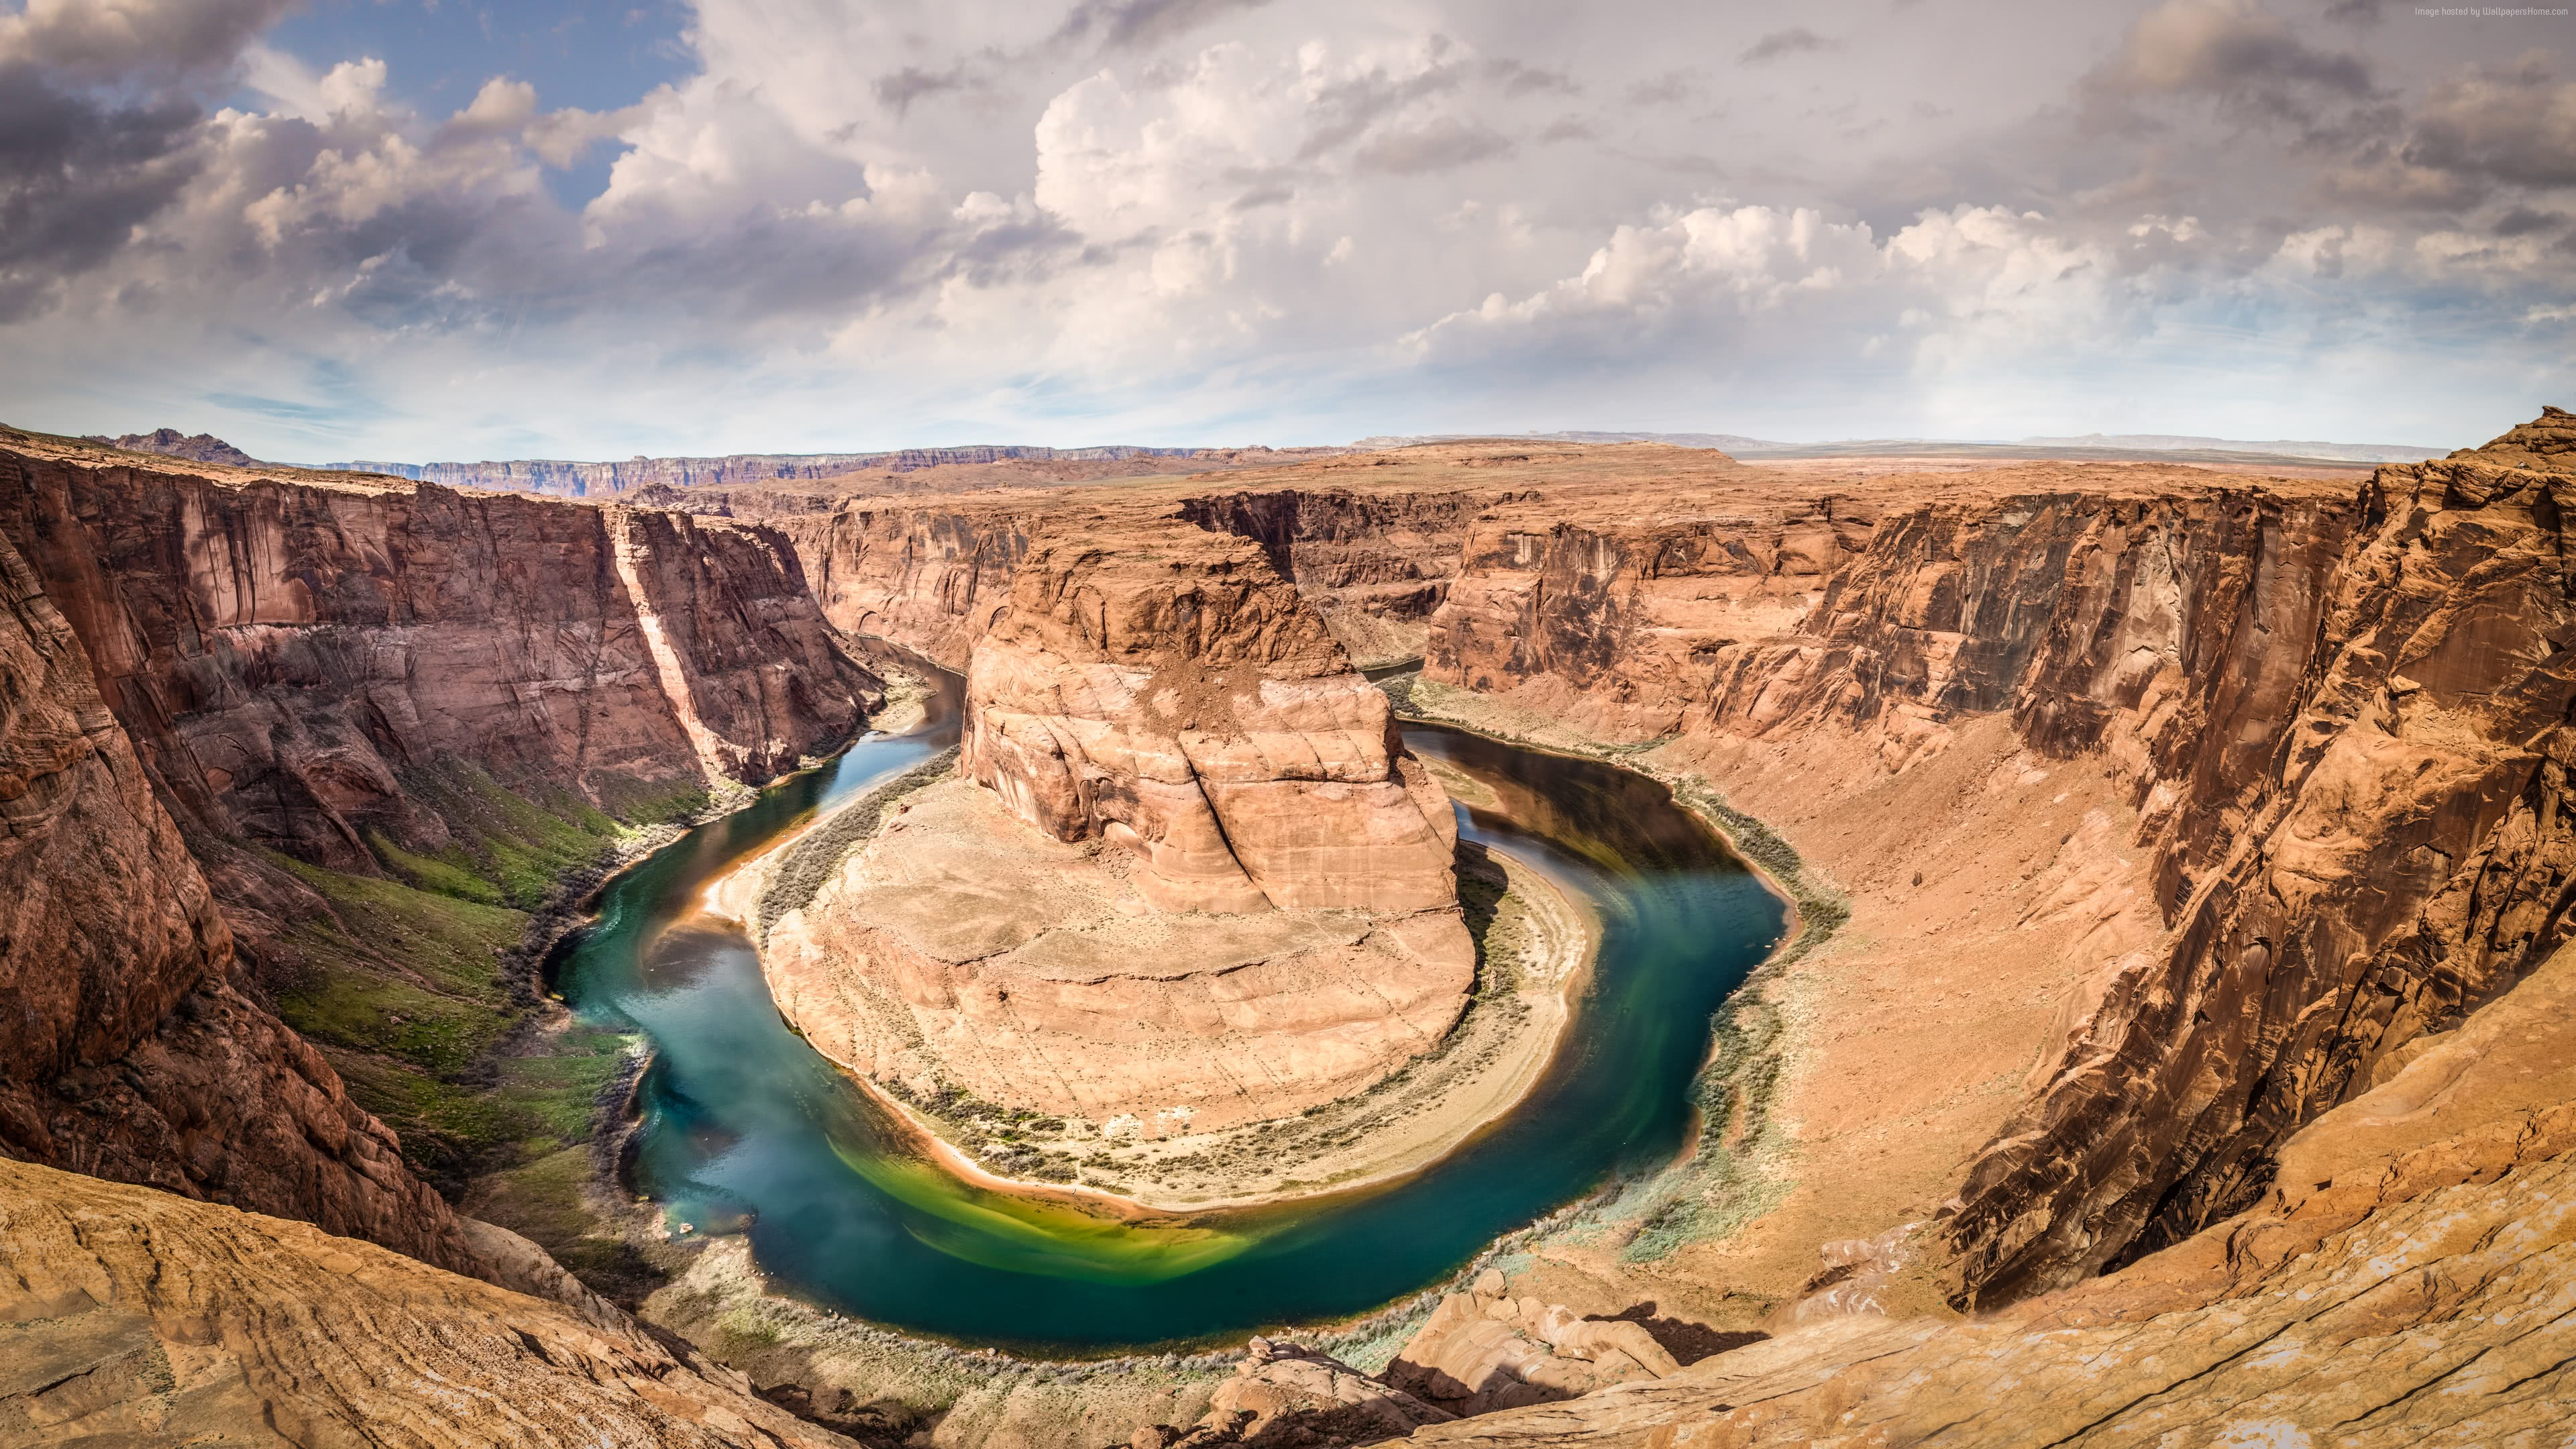 Horseshoe Bend, Colorado River, Arizona UHD 4K Wallpaper